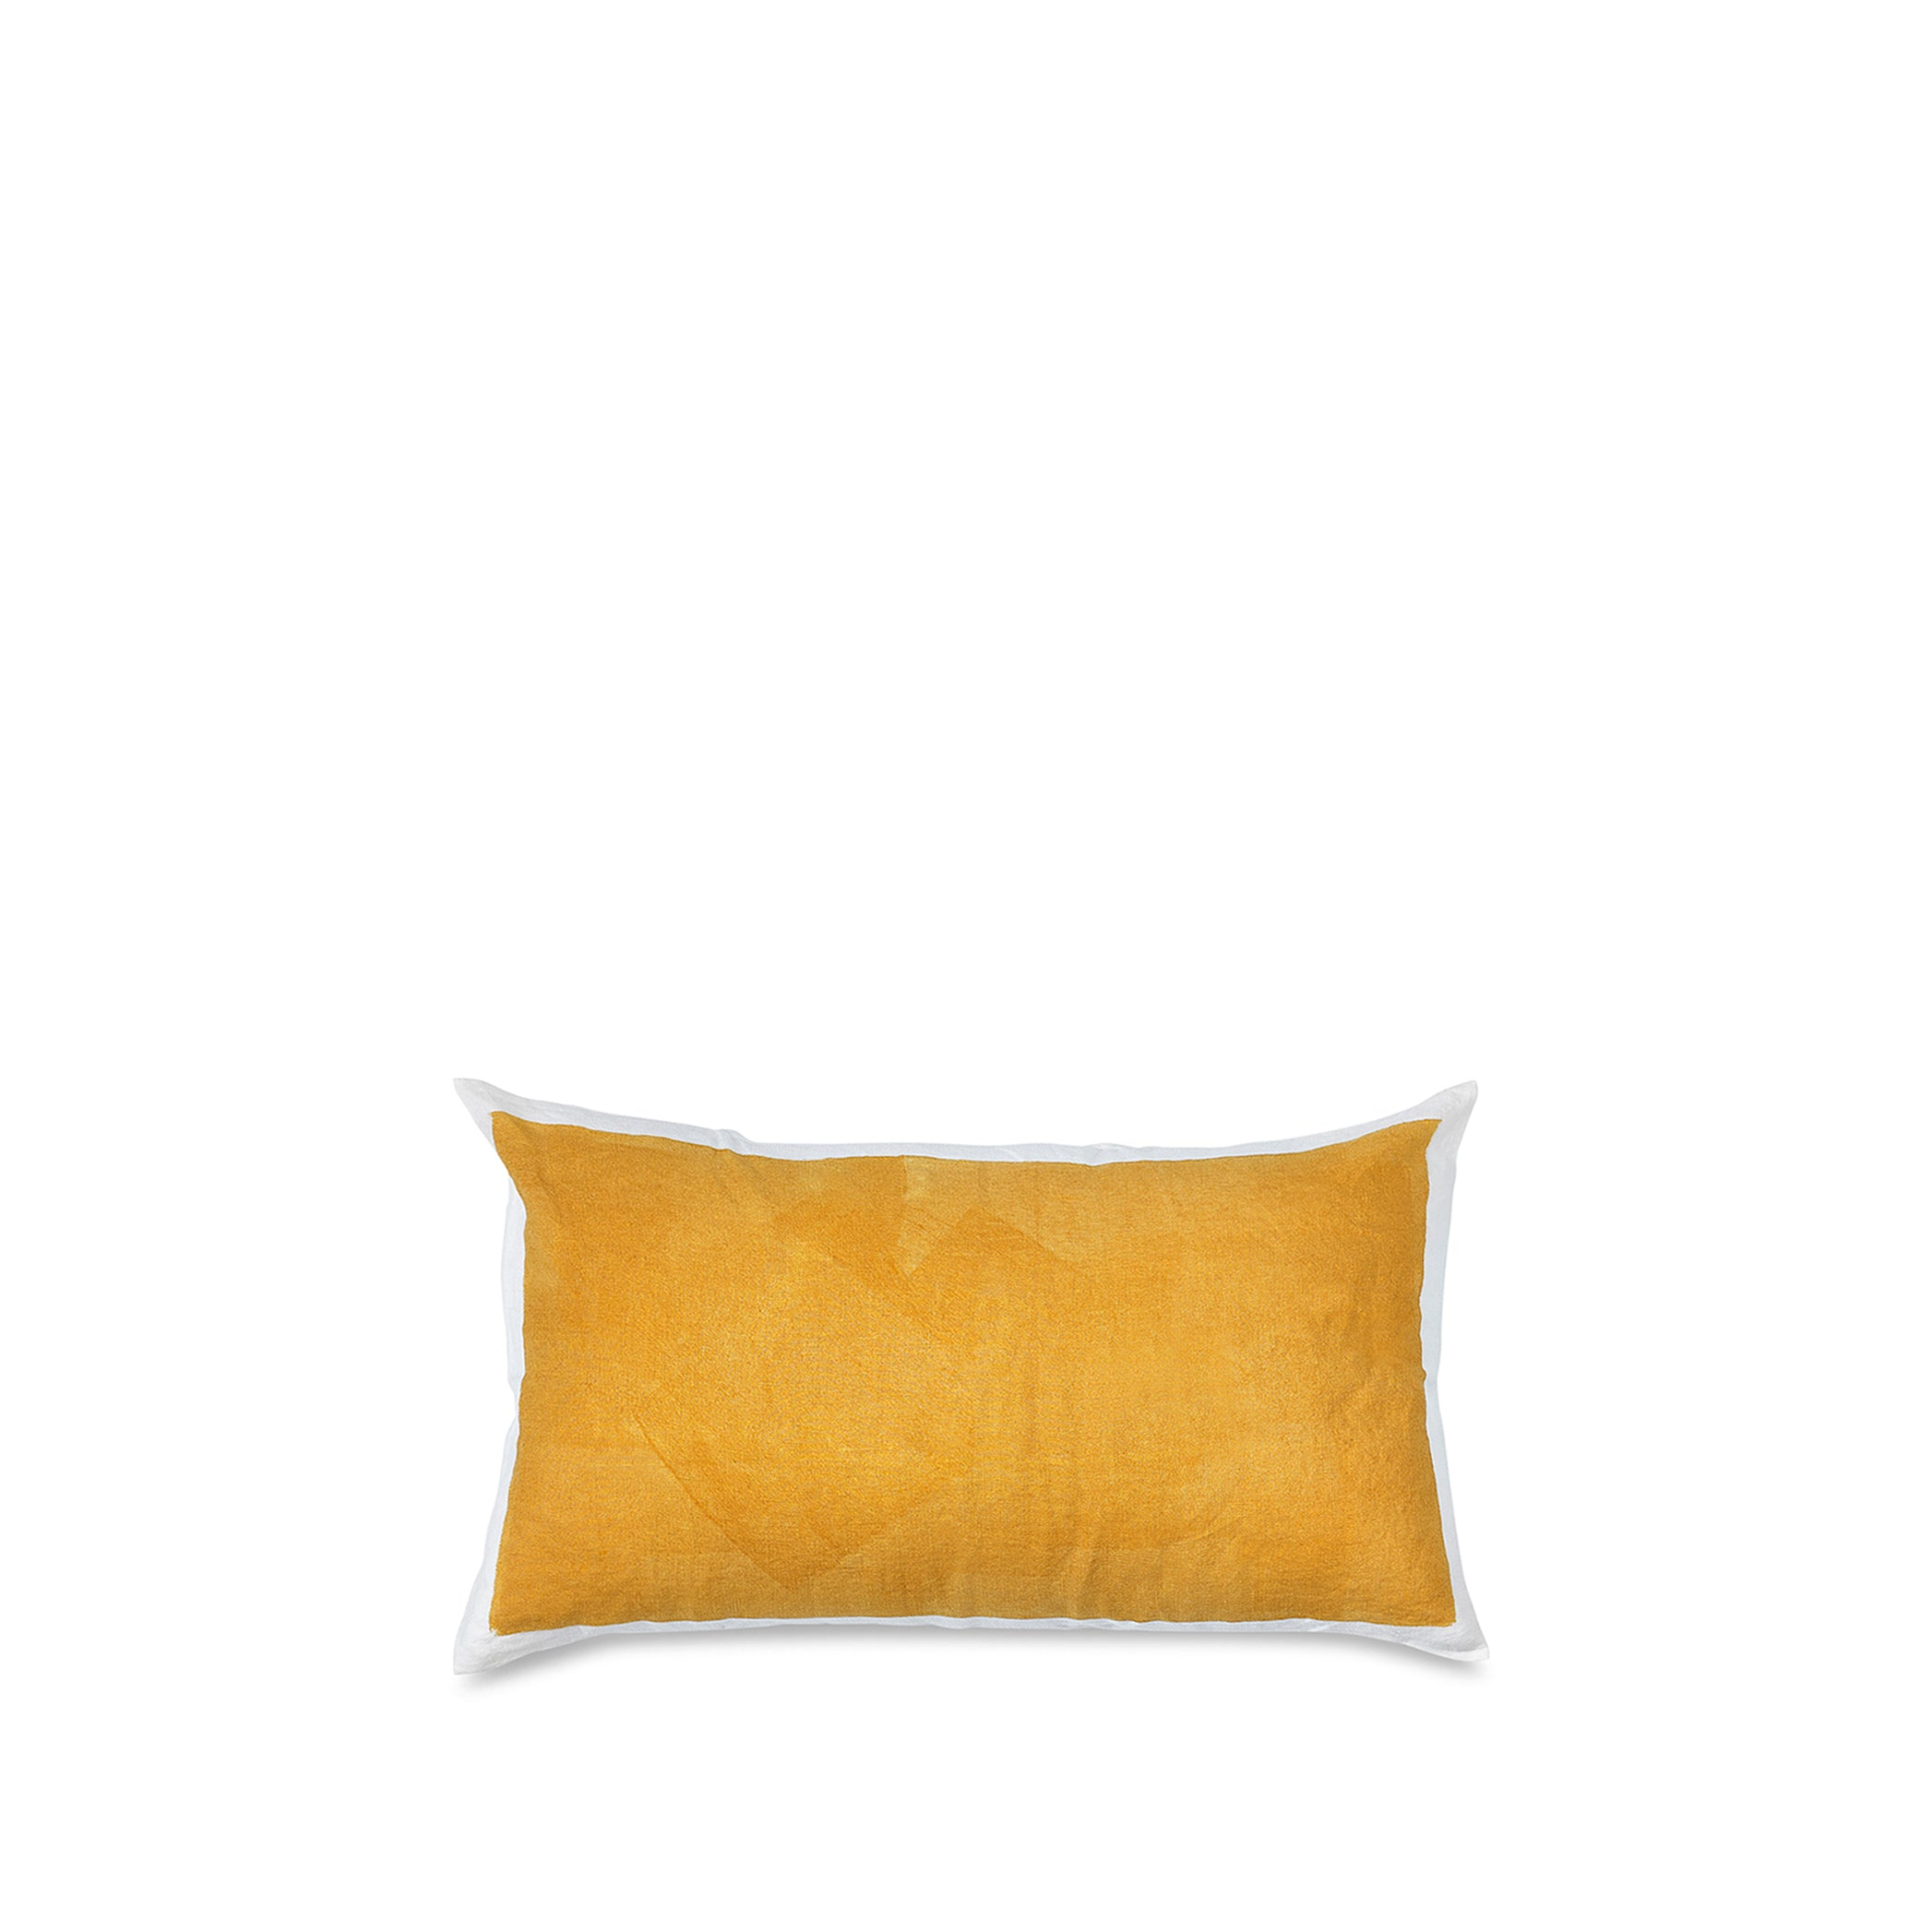 Hand Painted Linen Cushion in Mustard Yellow, 50cm x 30cm